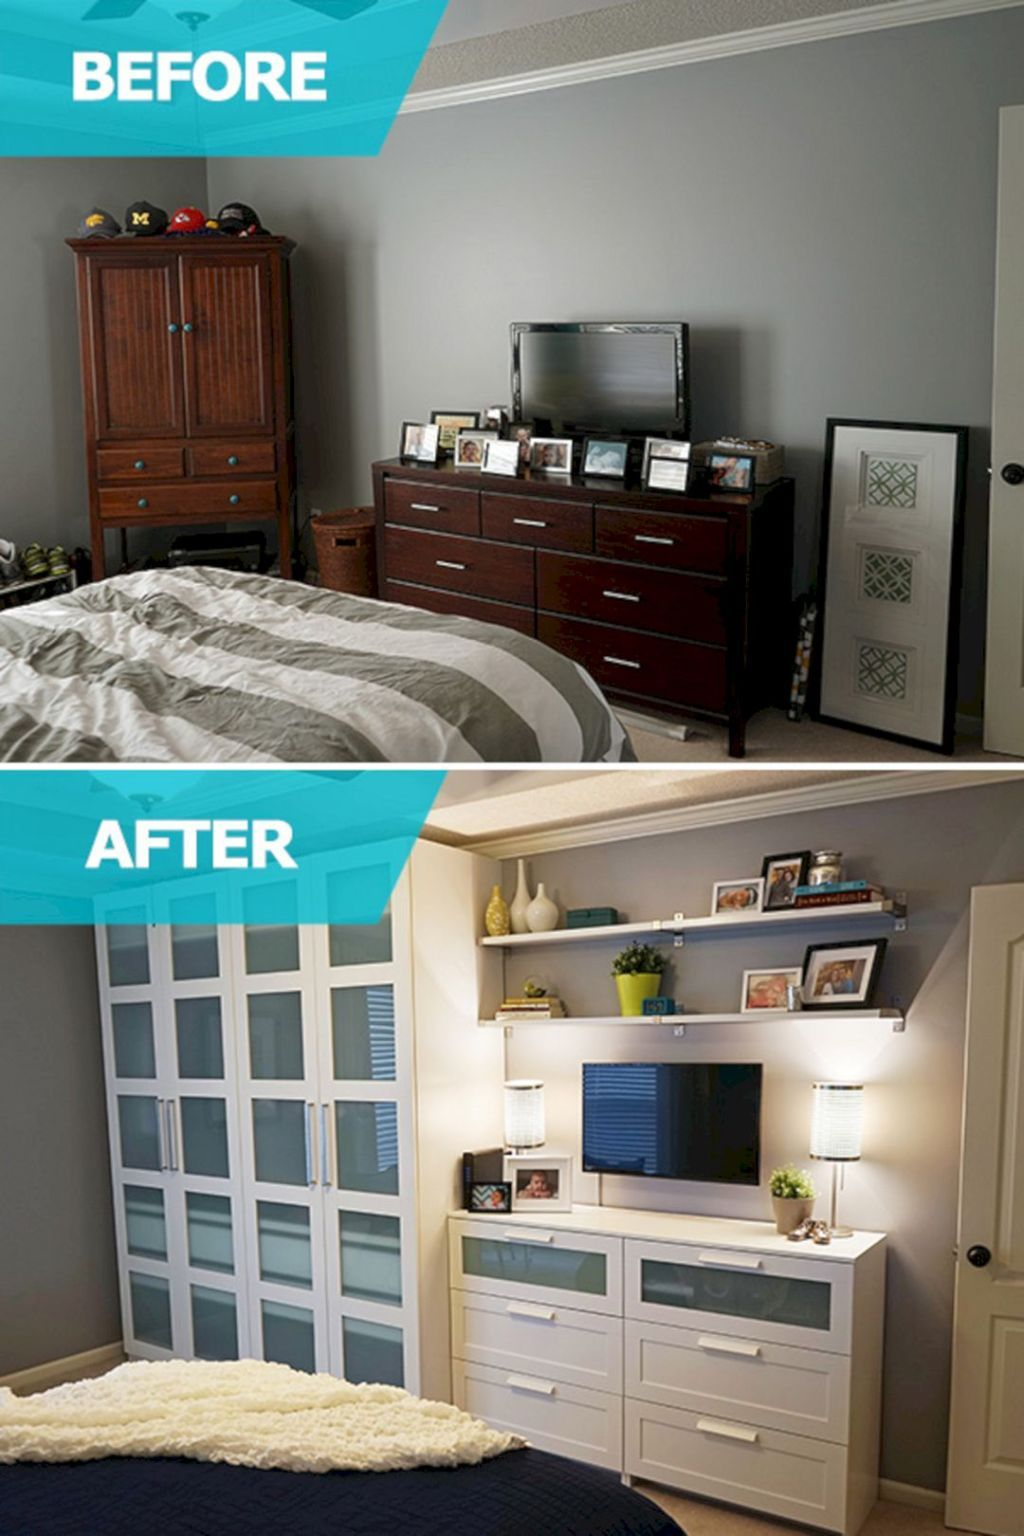 The Best Bedroom Storage Ideas For Small Room Spaces No